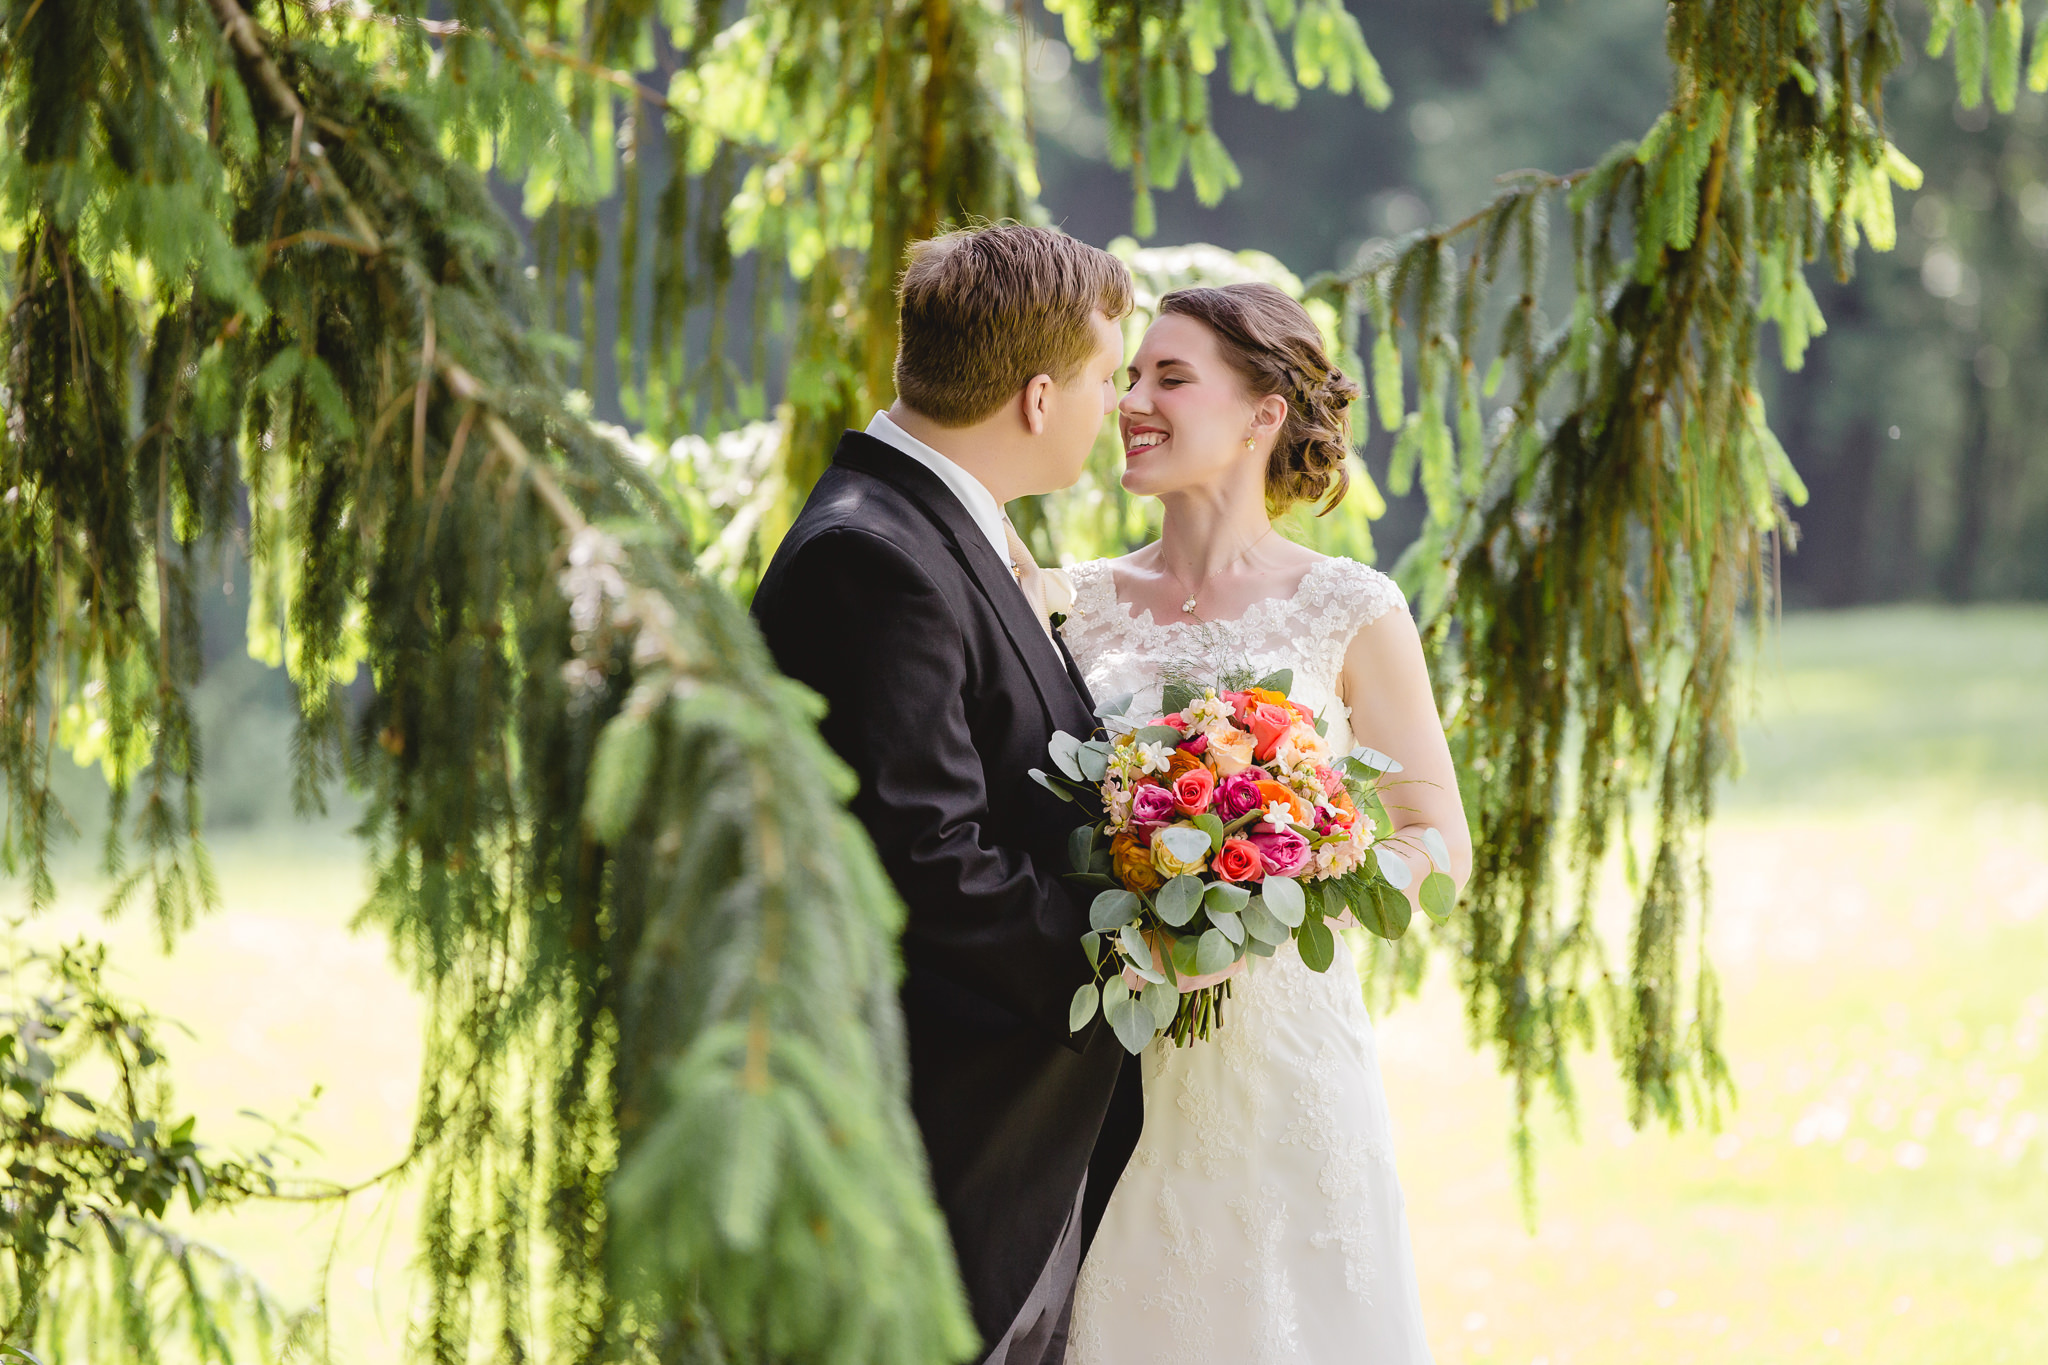 Bride & groom among pine trees at Shannopin Country Club